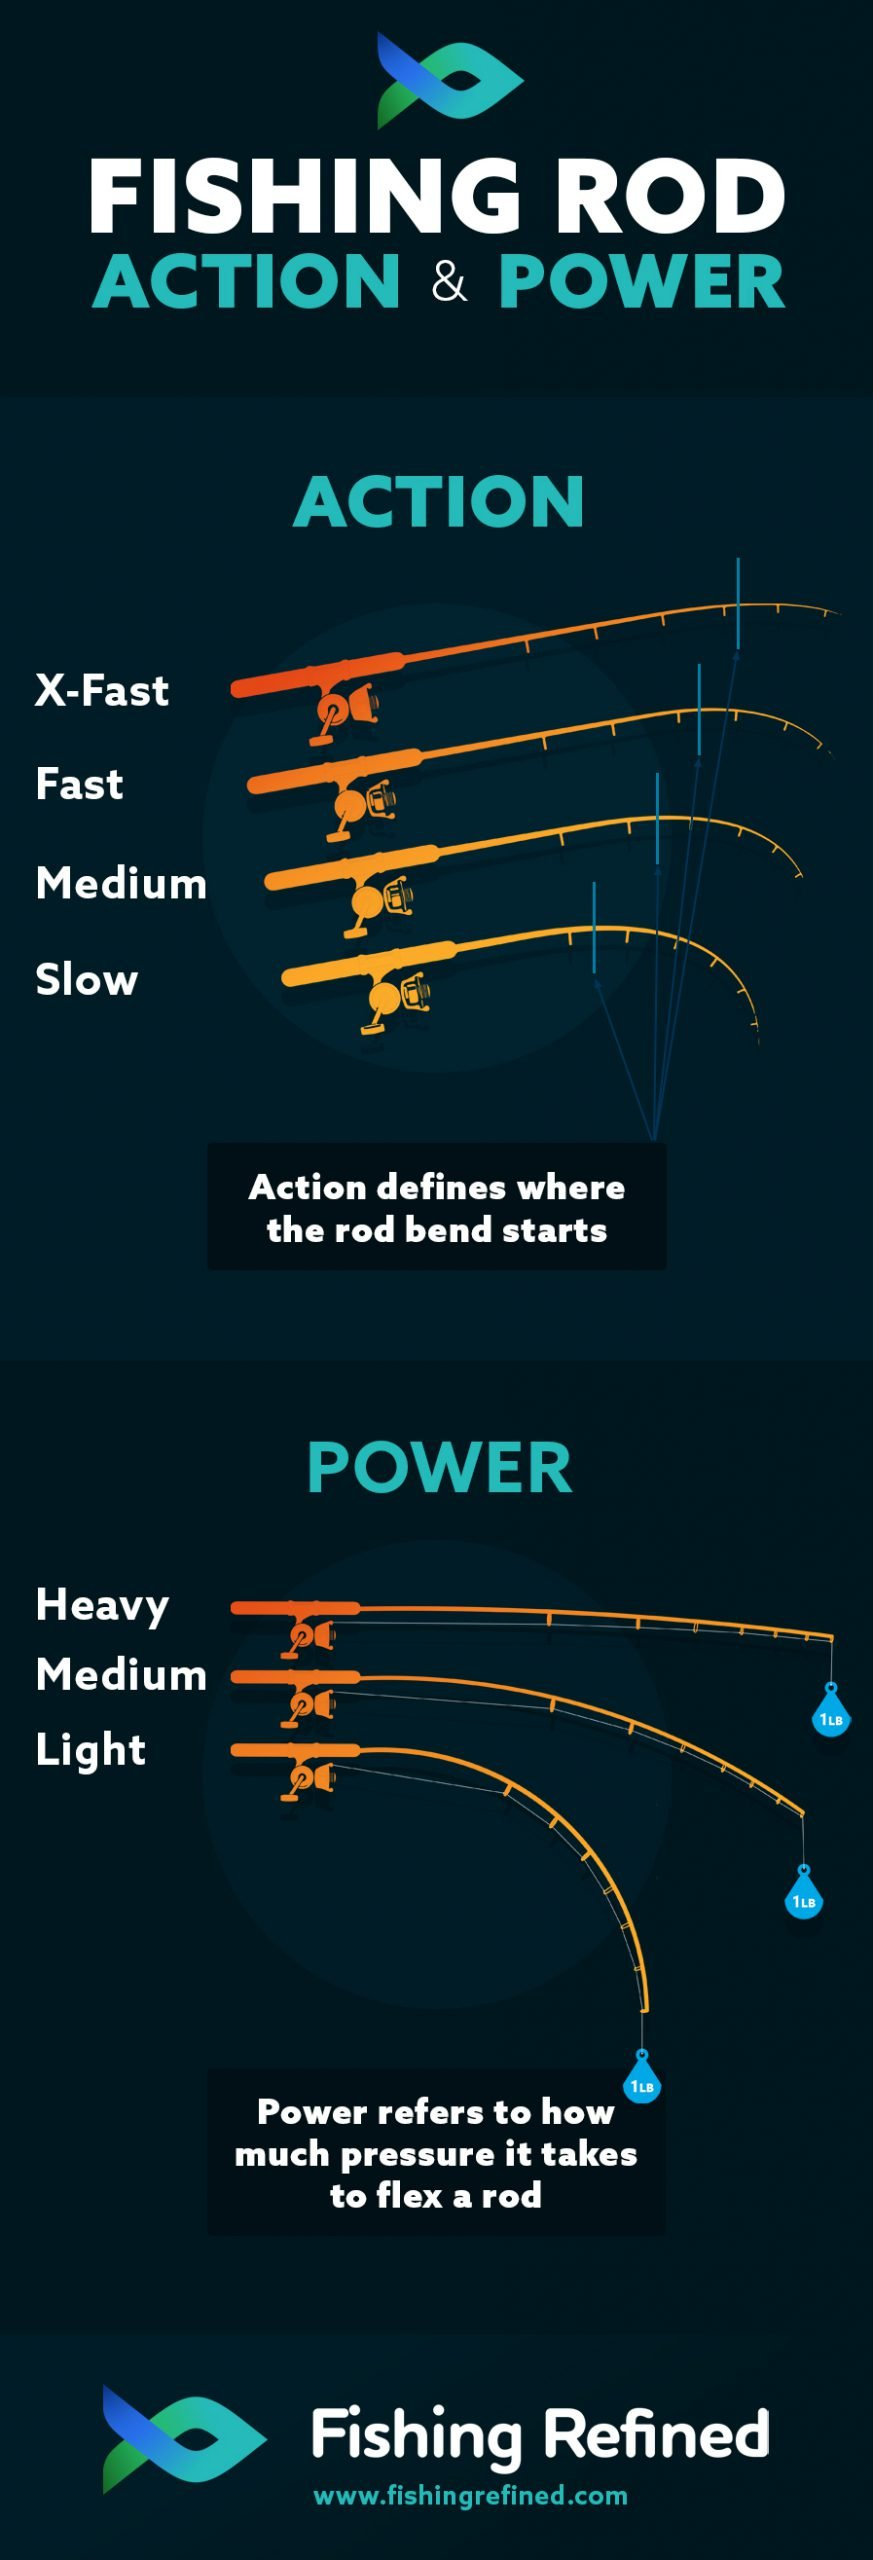 Action and Power Fishing Rod Infographic